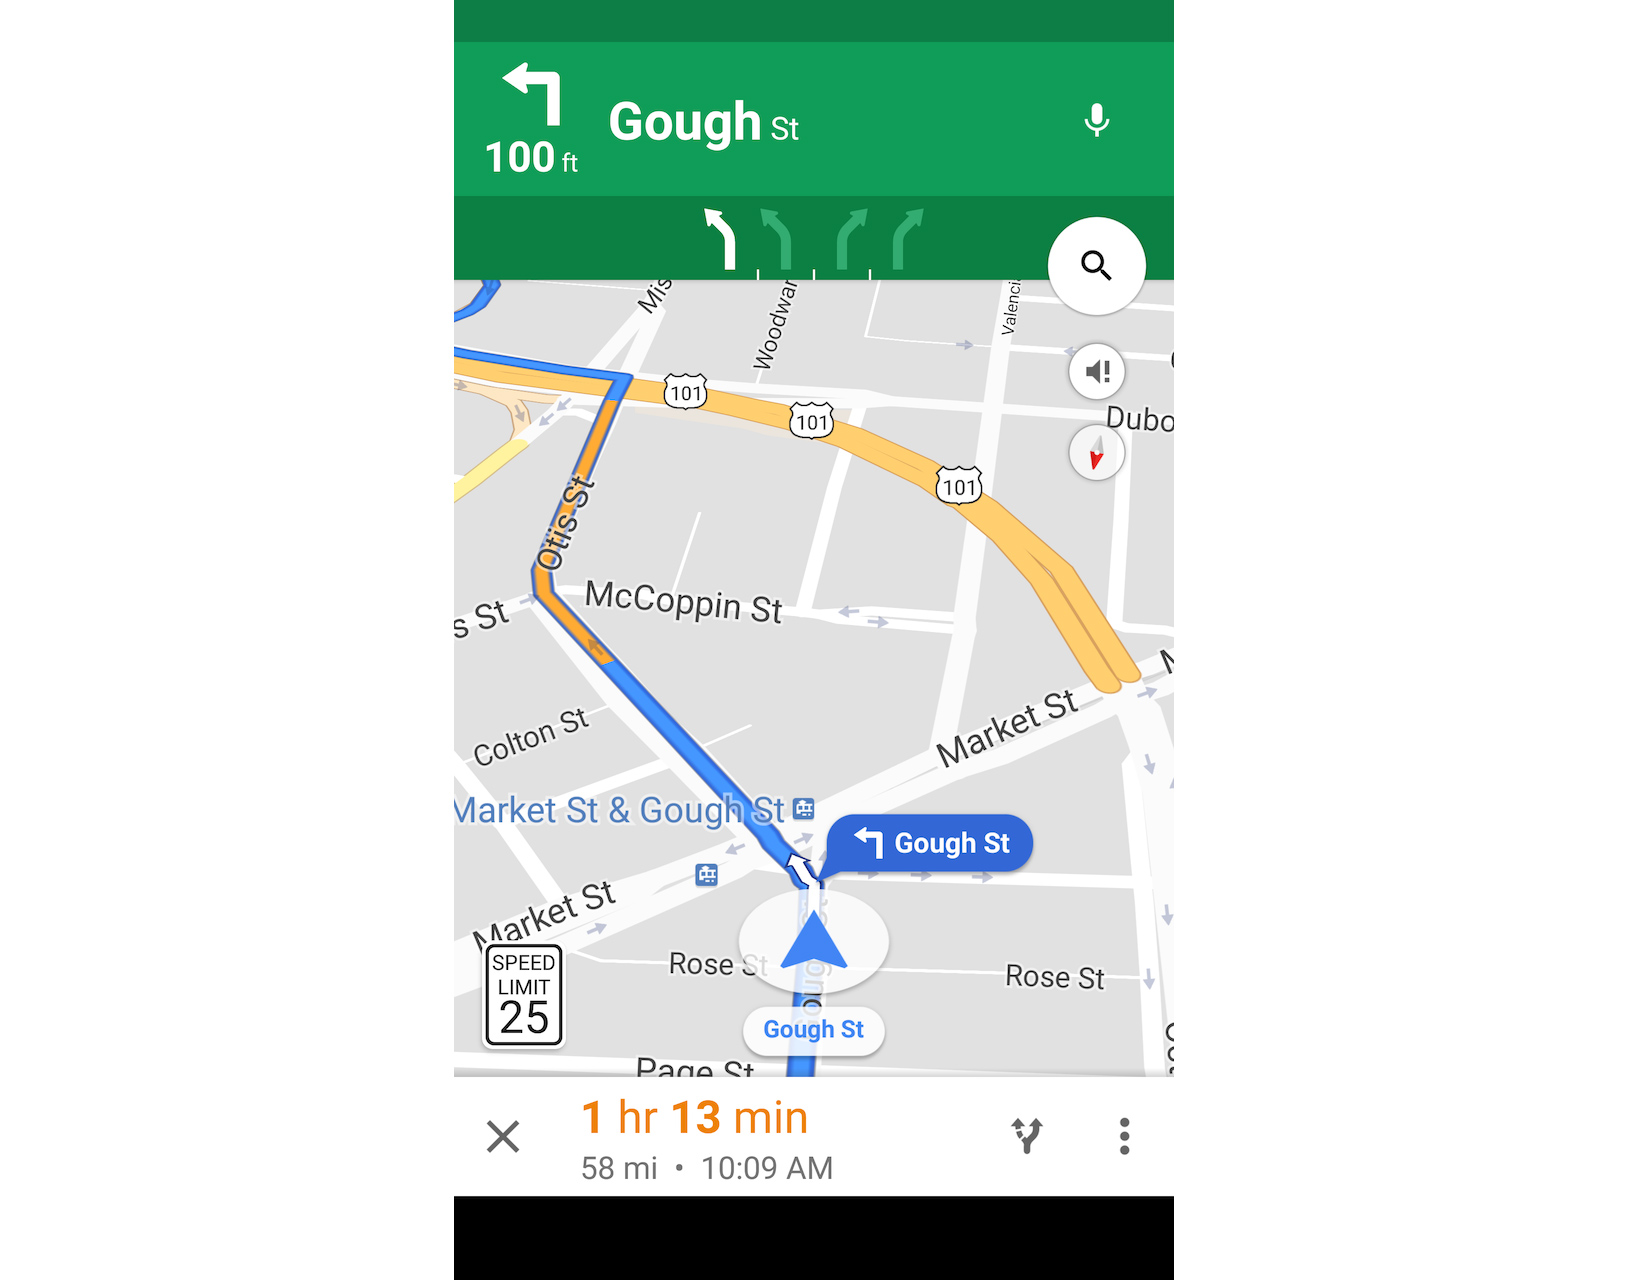 Google Maps will finally show how much you're sding | Ars ... on easy driving directions maps, google earth street view, disney driving maps, google driver job, driving distance maps, google plan a trip, google mapquest, google current traffic, google apartments, google links, google map direction icon, google sites, railroad traffic maps, google us map, expedia driving maps, google office locations, mapquest driving maps, google addresses, get driving directions from maps, google mapss,